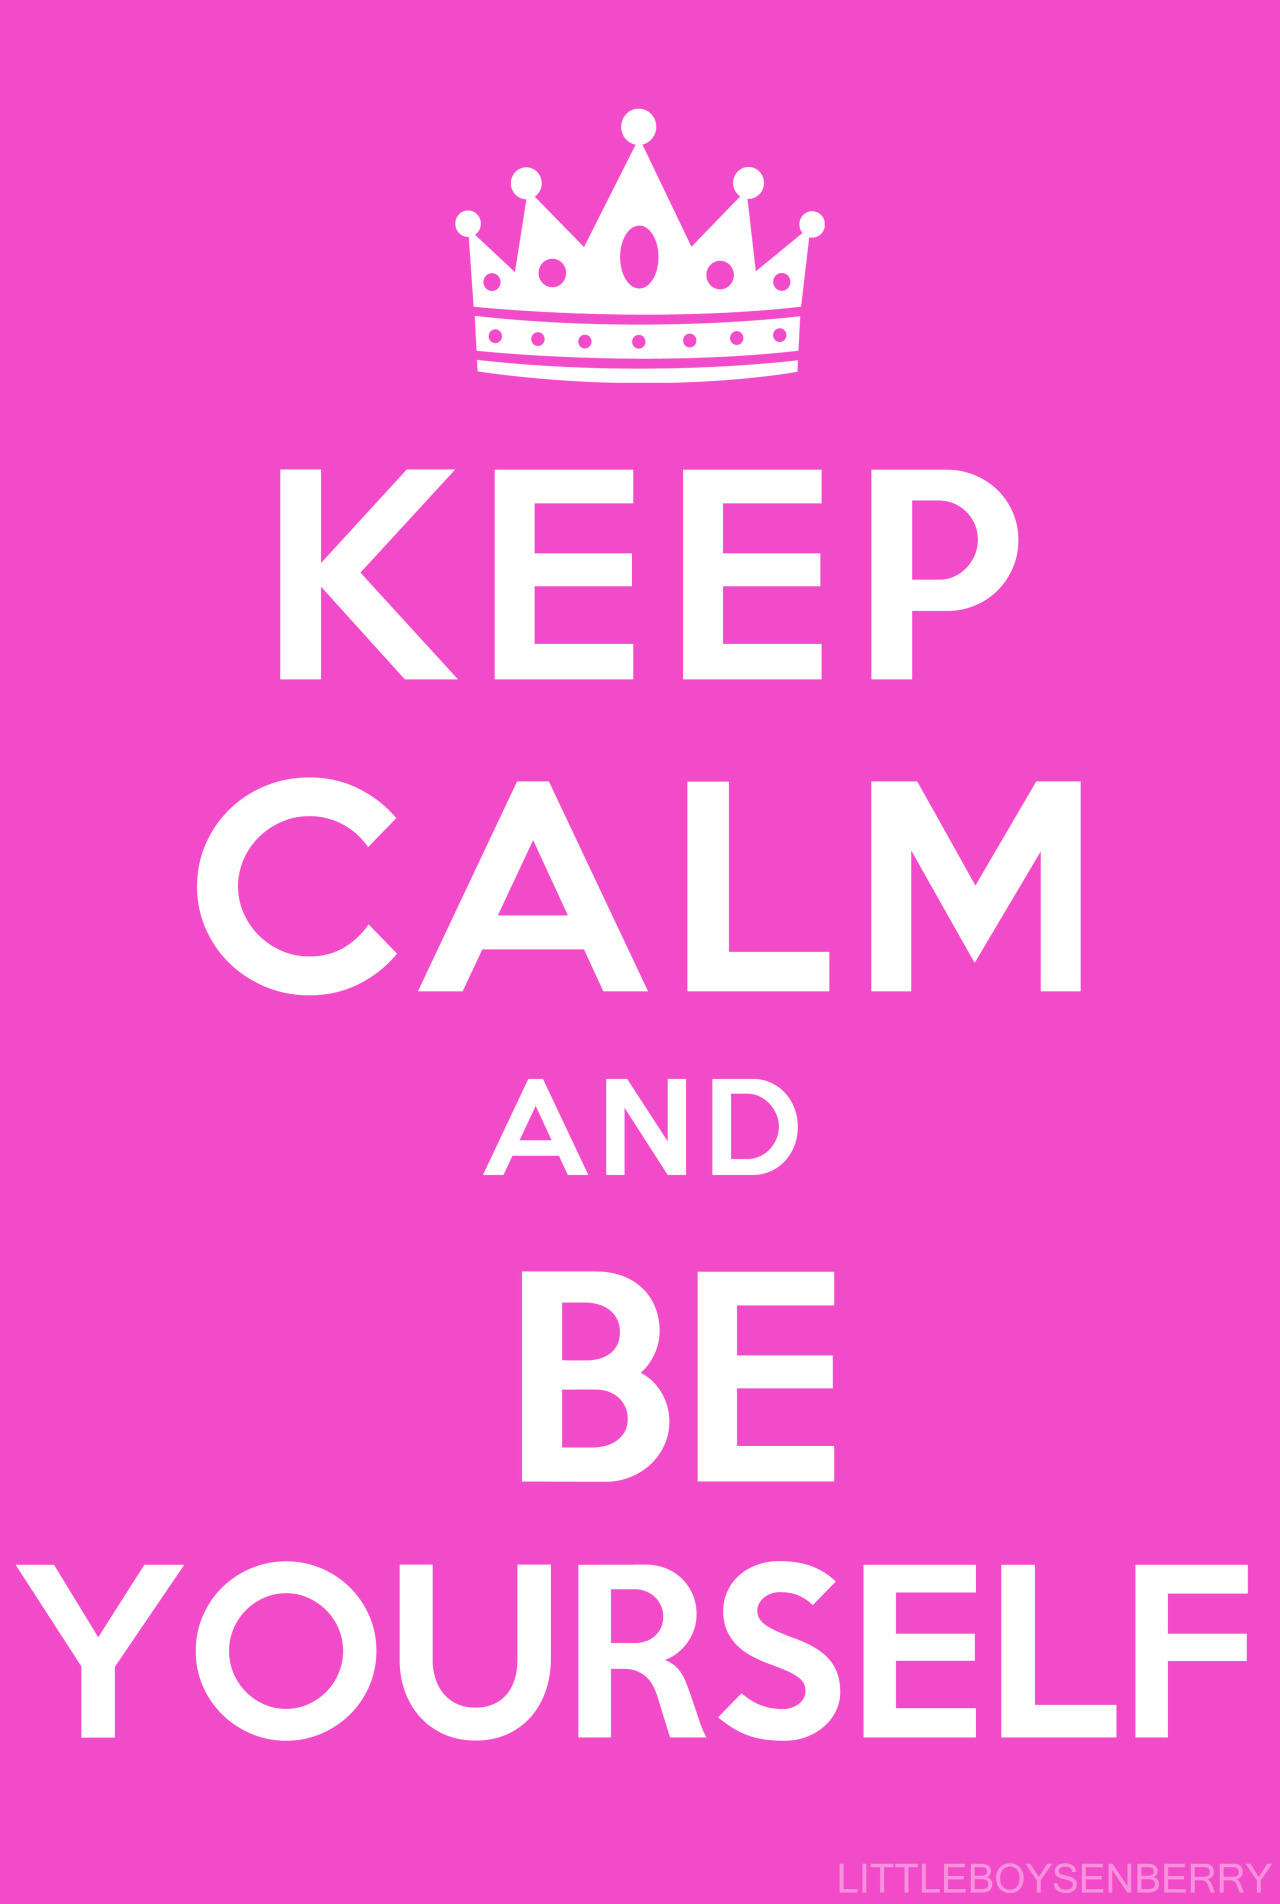 littleboysenberry:  keep calm and be yourself